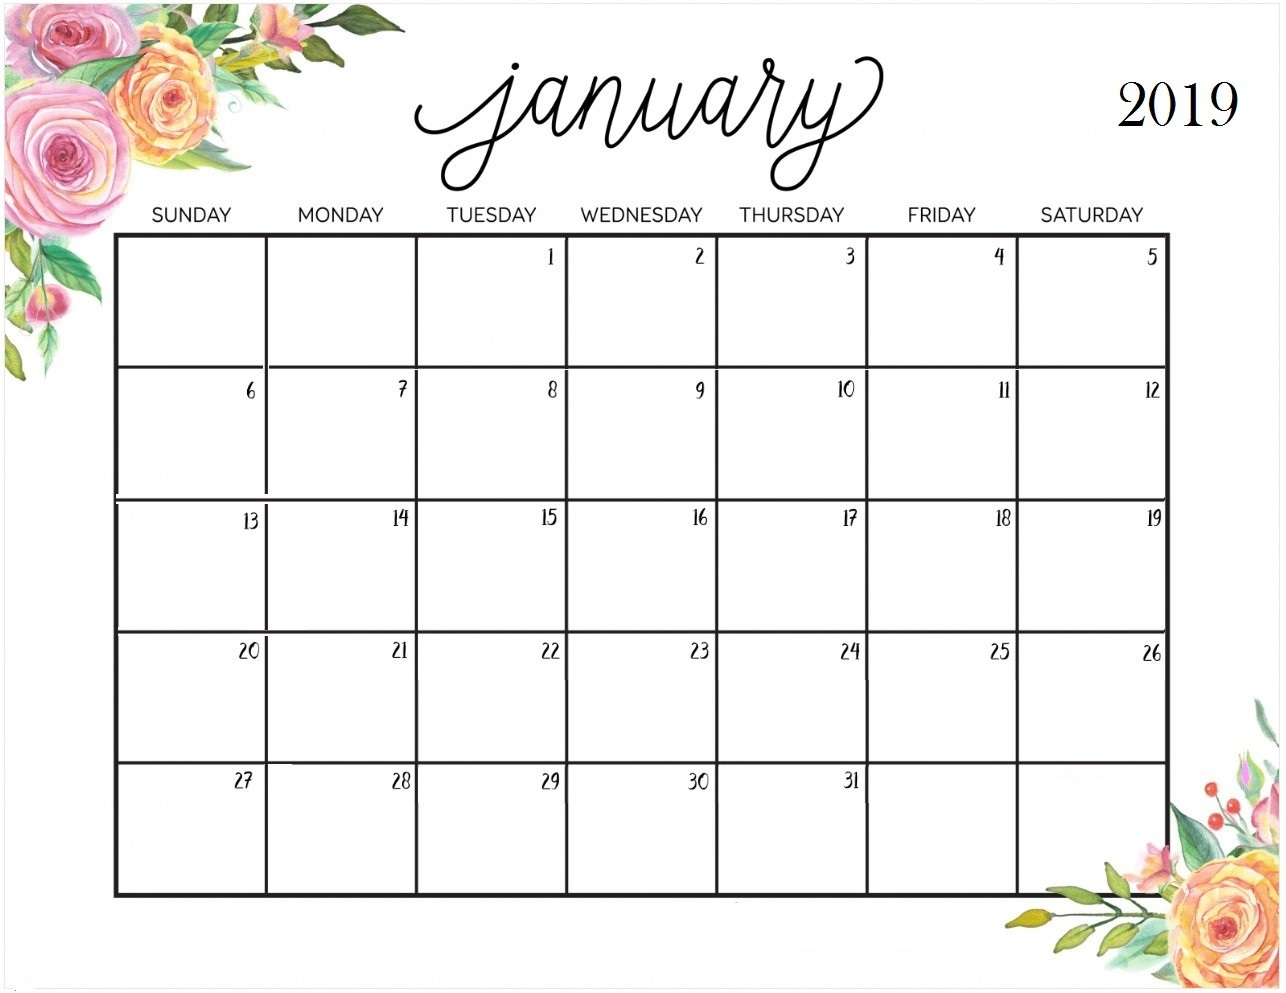 January 2019 Calendar Beautiful Printable Border